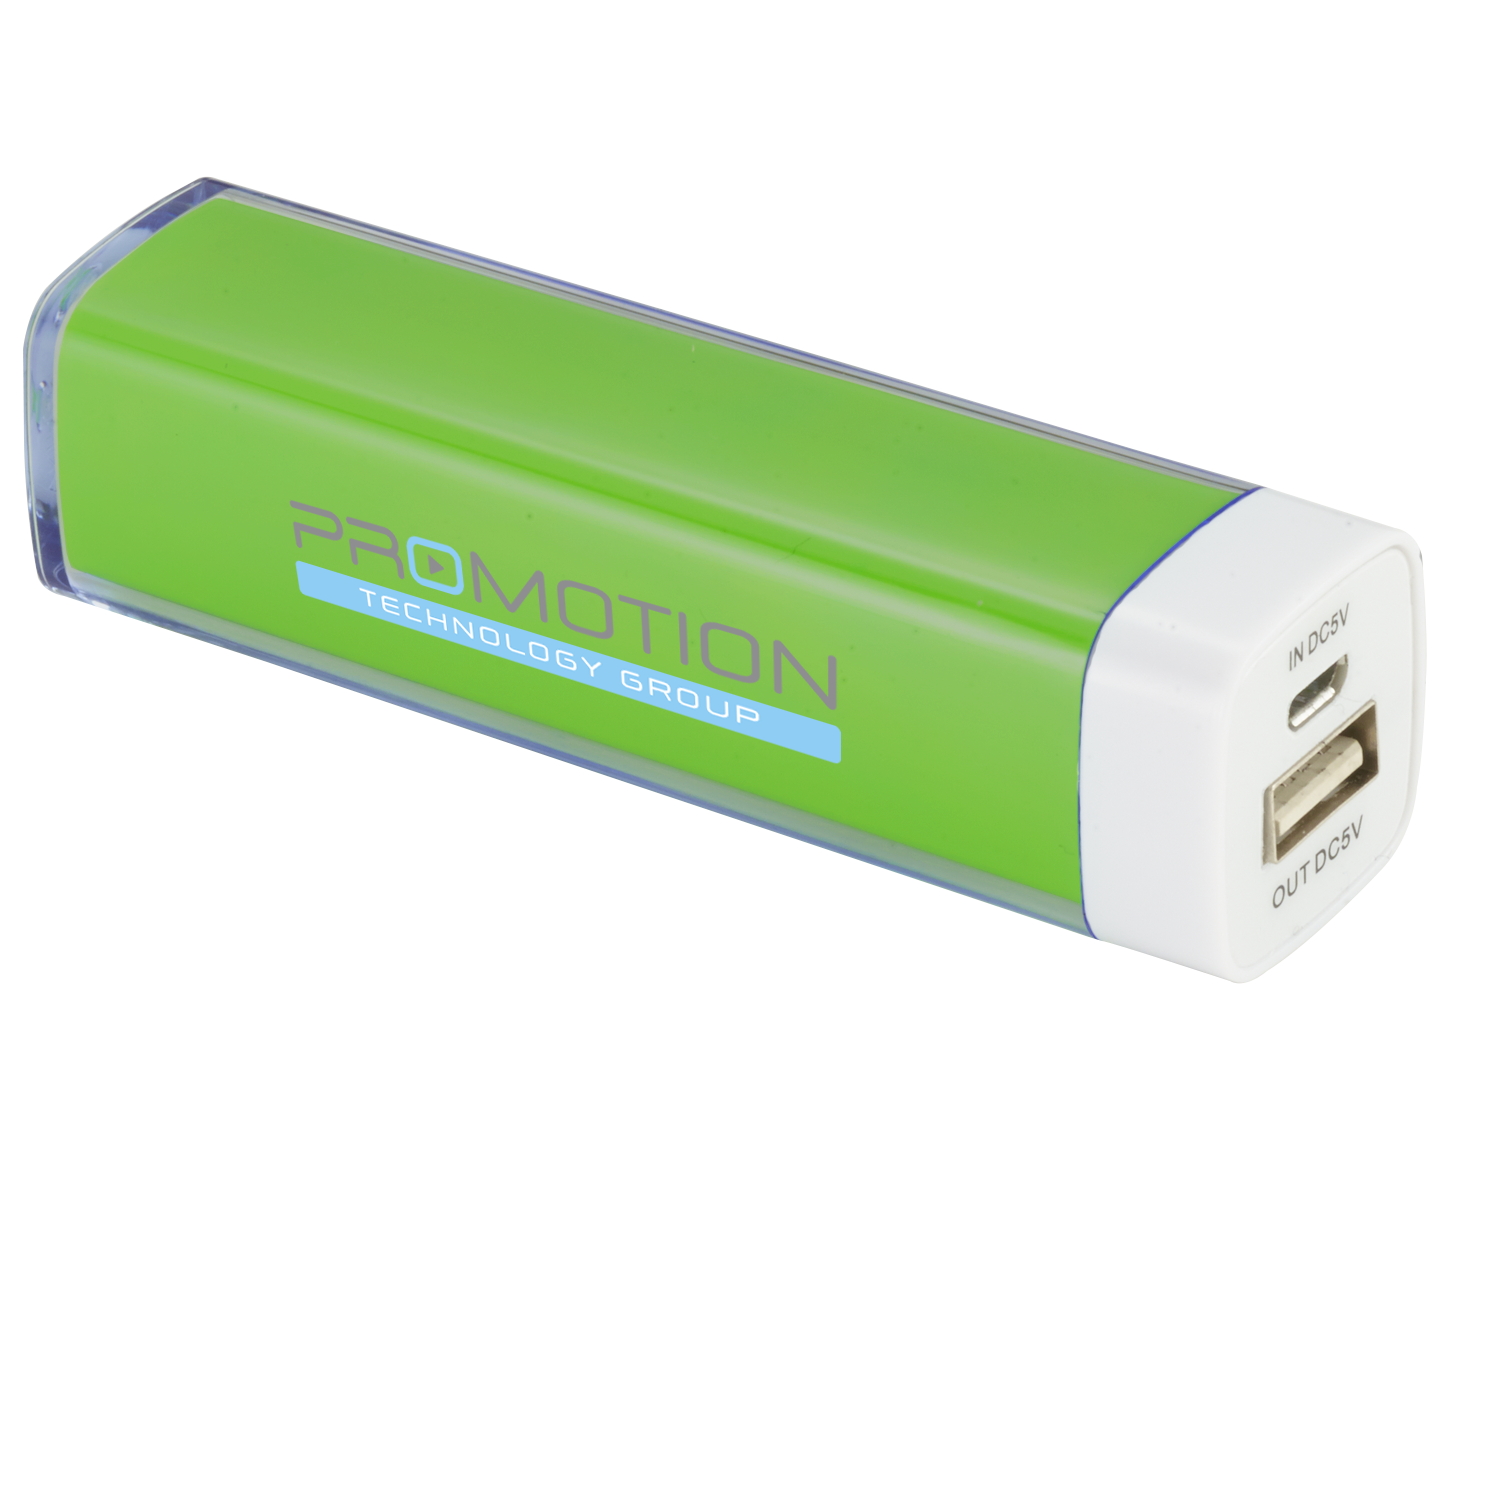 Power-On™ UL Listed Power Bank